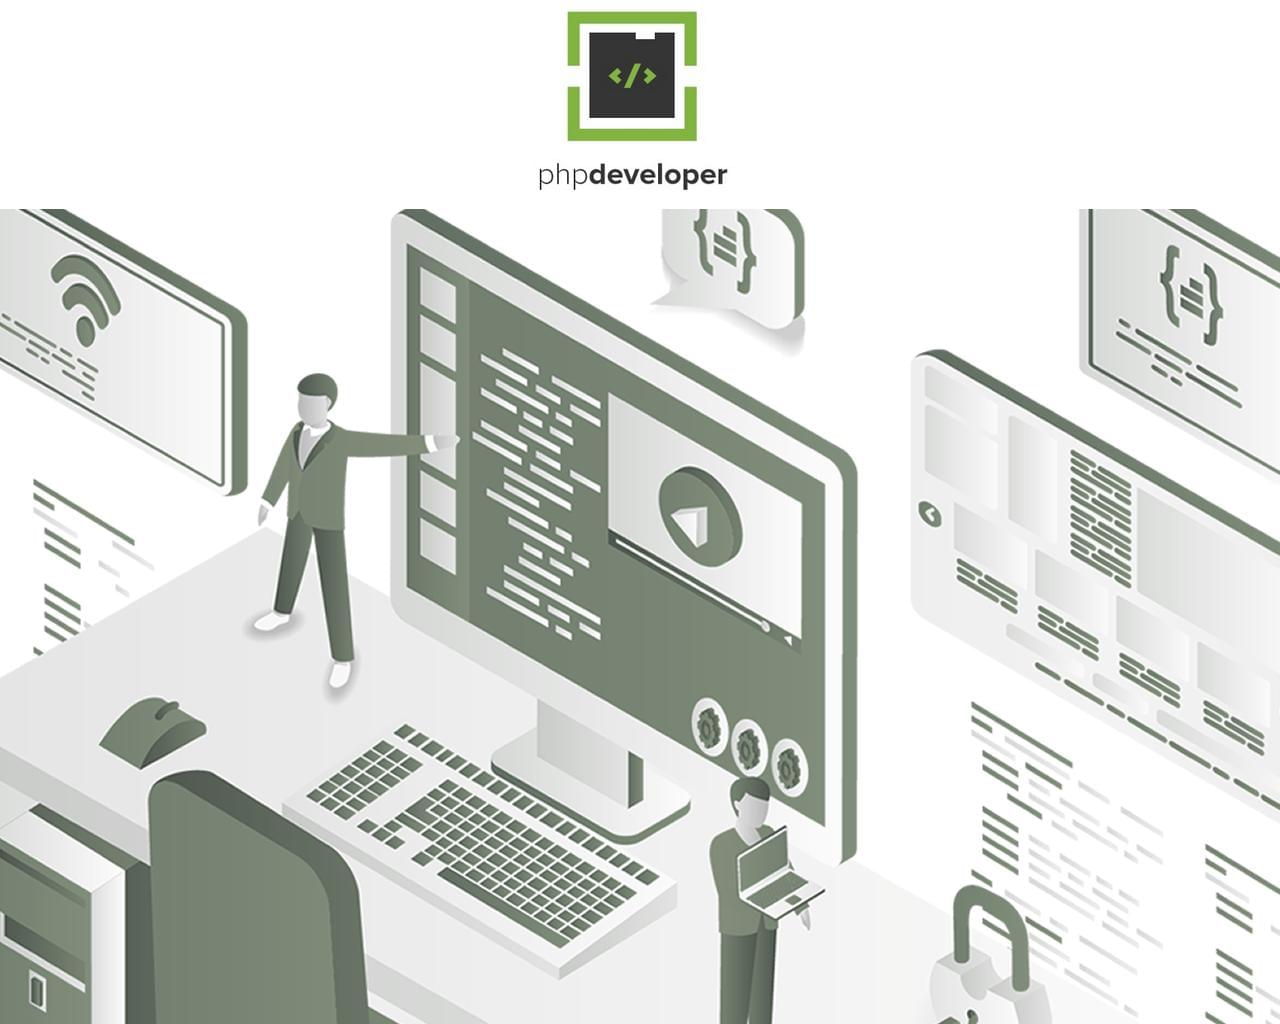 Hire Expert PHP Developer  by pluginpunch - 113846